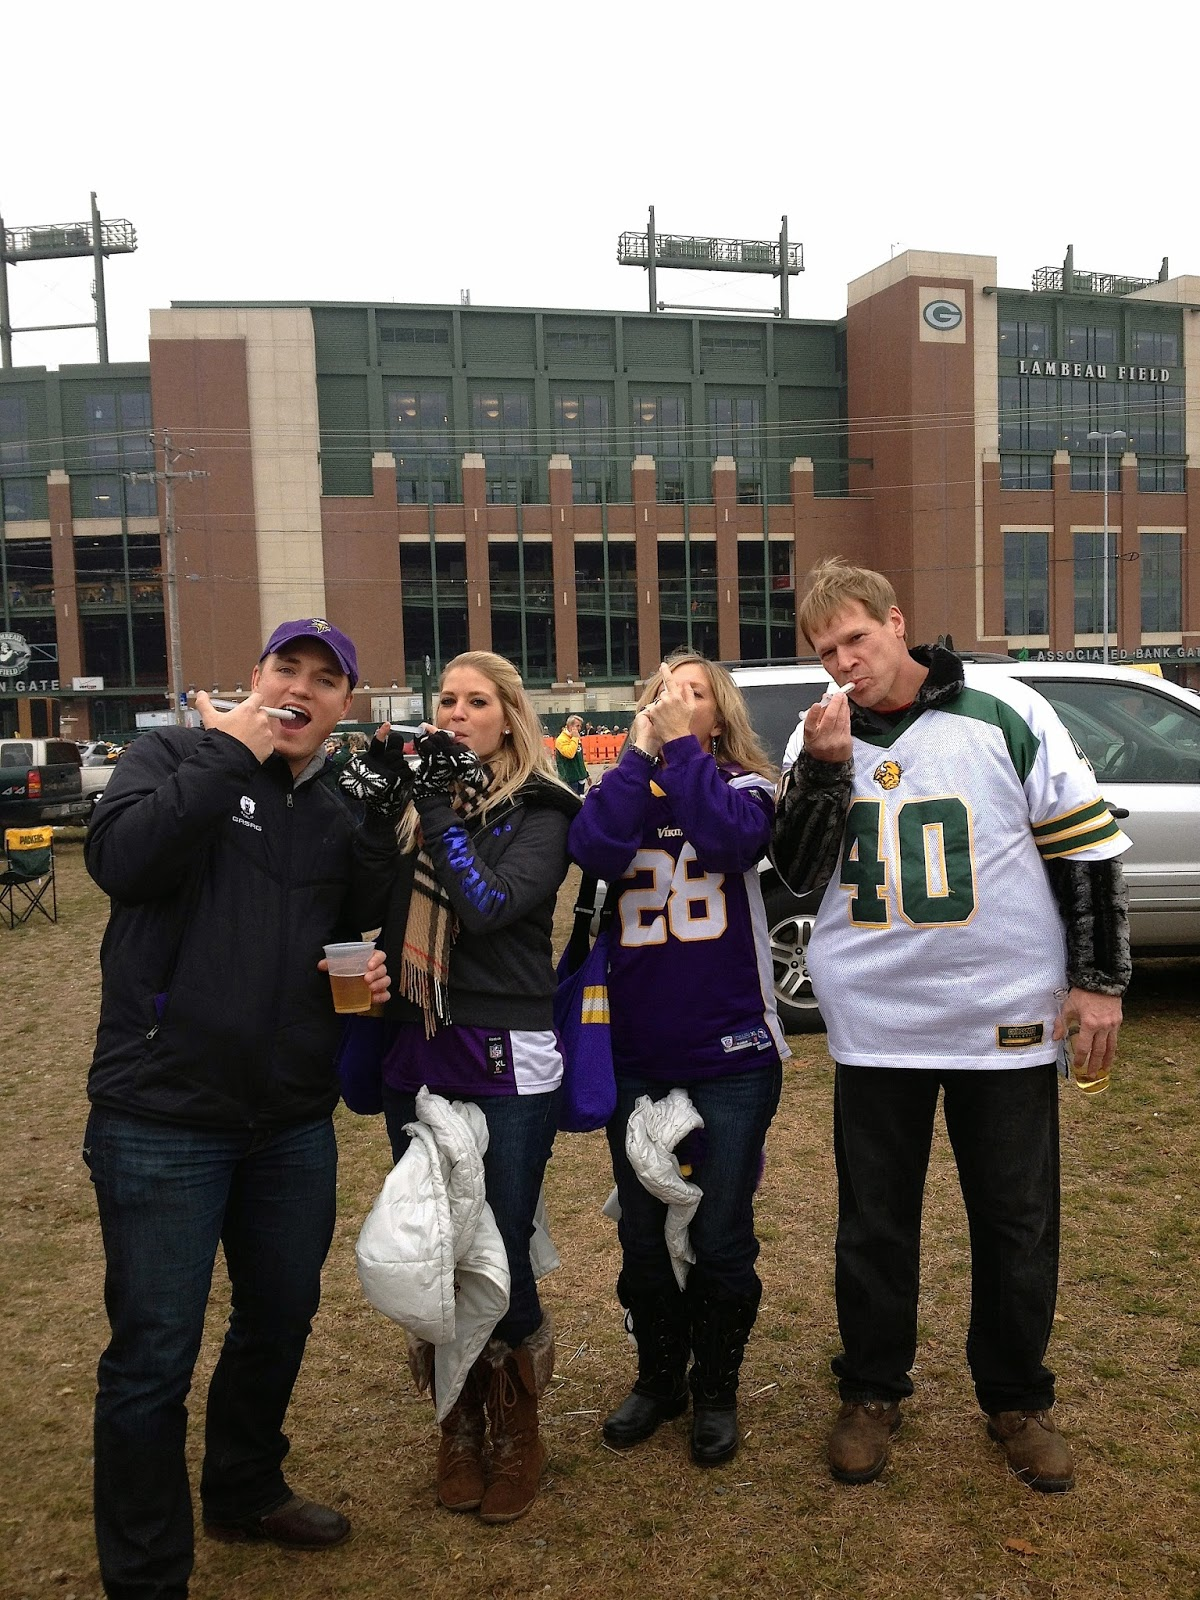 tailgating at Lambeau Field